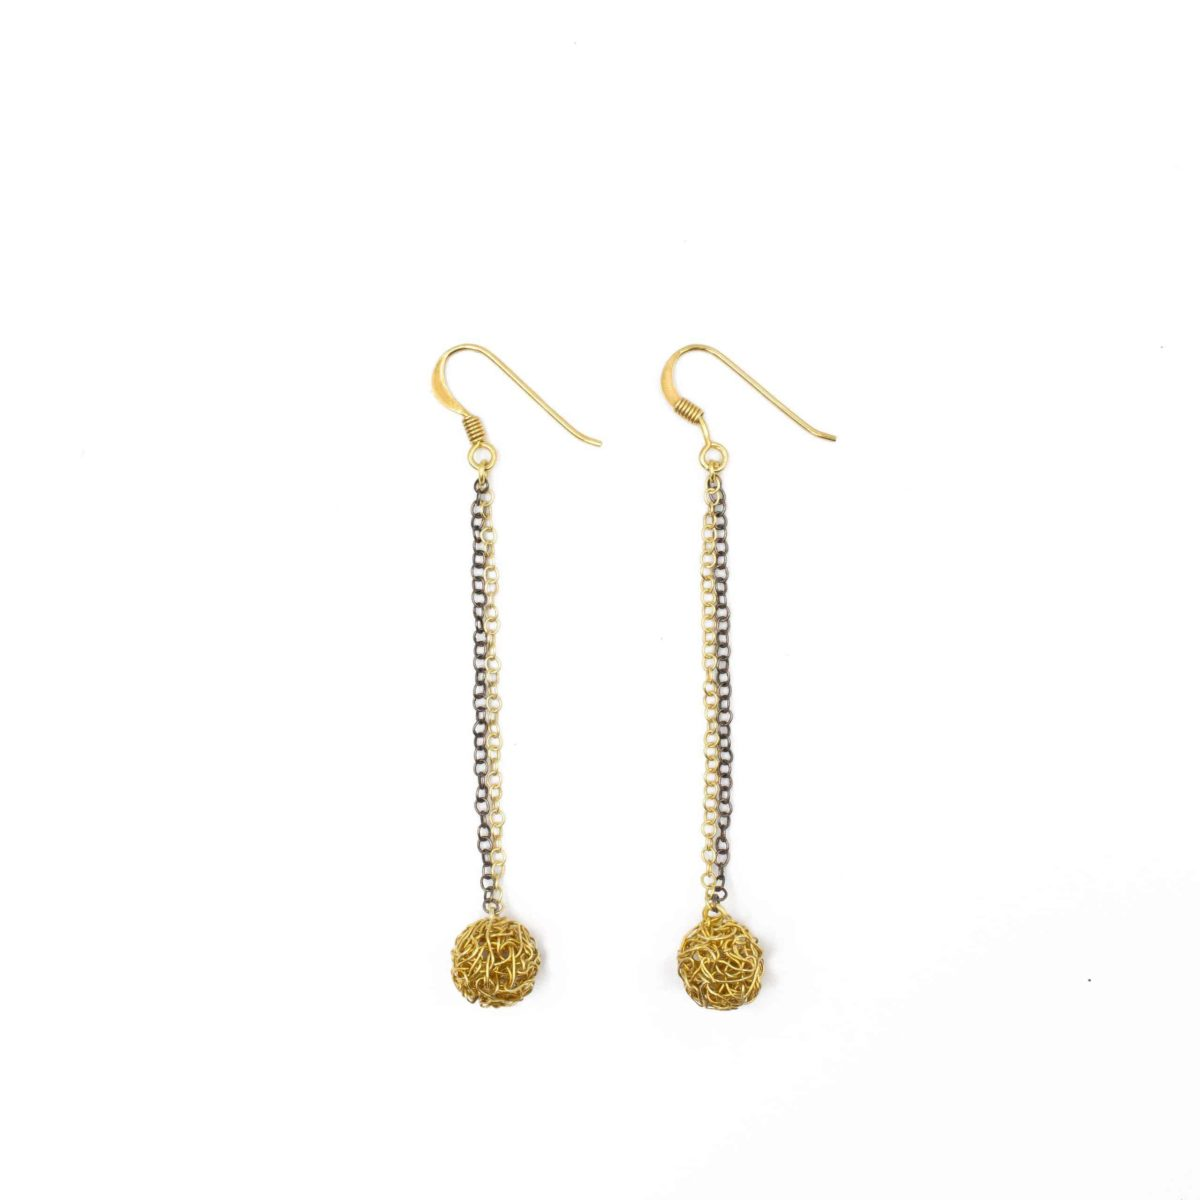 long gold earrings with a small handmade sphere